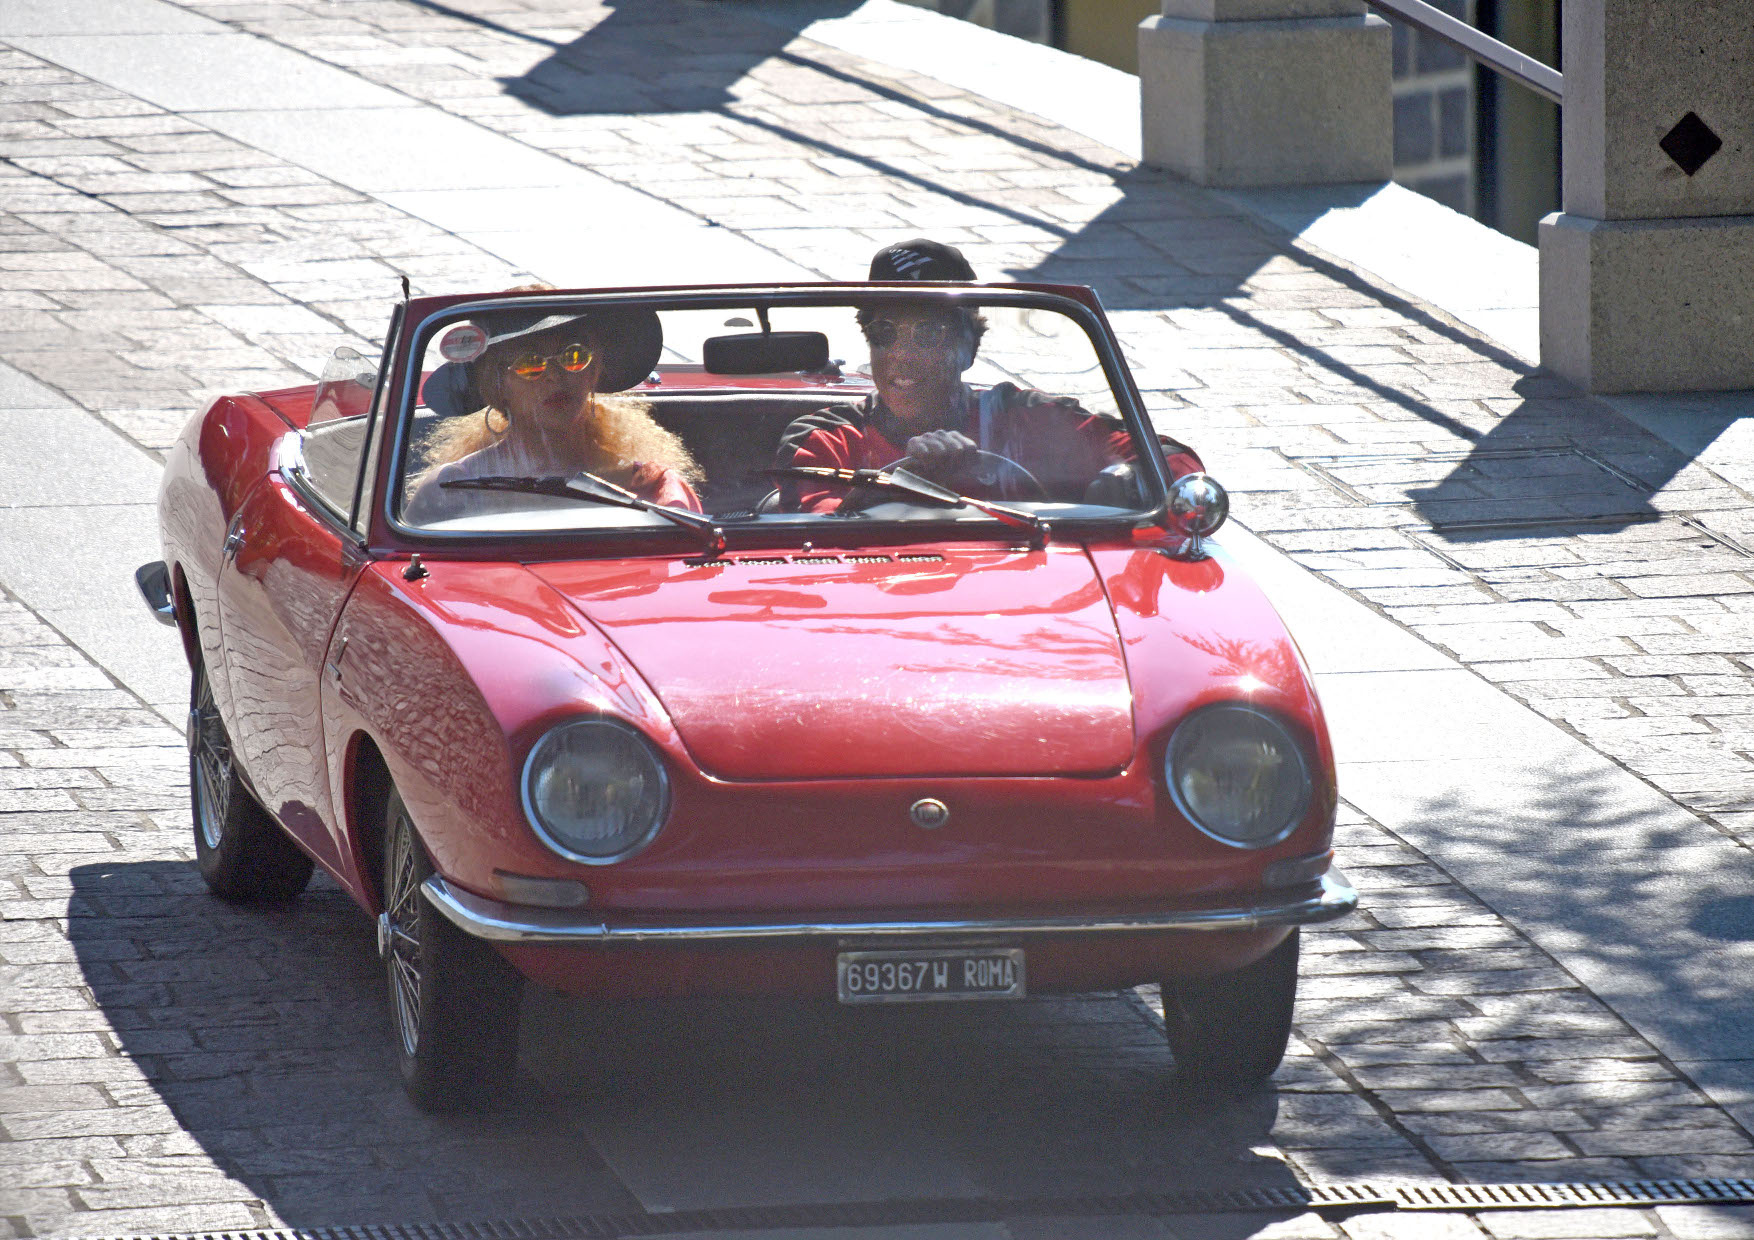 Beyonc? and Jay-Z are seen on a vintage red car on July 07, 2018 in Lake Como, Italy.  *MAILONLINE OUT*  Pictured: Beyonc? and Jay-Z Ref: SPL5008738 080718 NON-EXCLUSIVE Picture by: SplashNews.com  Splash News and Pictures Los Angeles: 310-821-2666 New York: 212-619-2666 London: 0207 644 7656 Milan: +39 02 4399 8577 Sydney: +61 02 9240 7700 photodesk@splashnews.com  World Rights, No France Rights, No Italy Rights, No Switzerland Rights